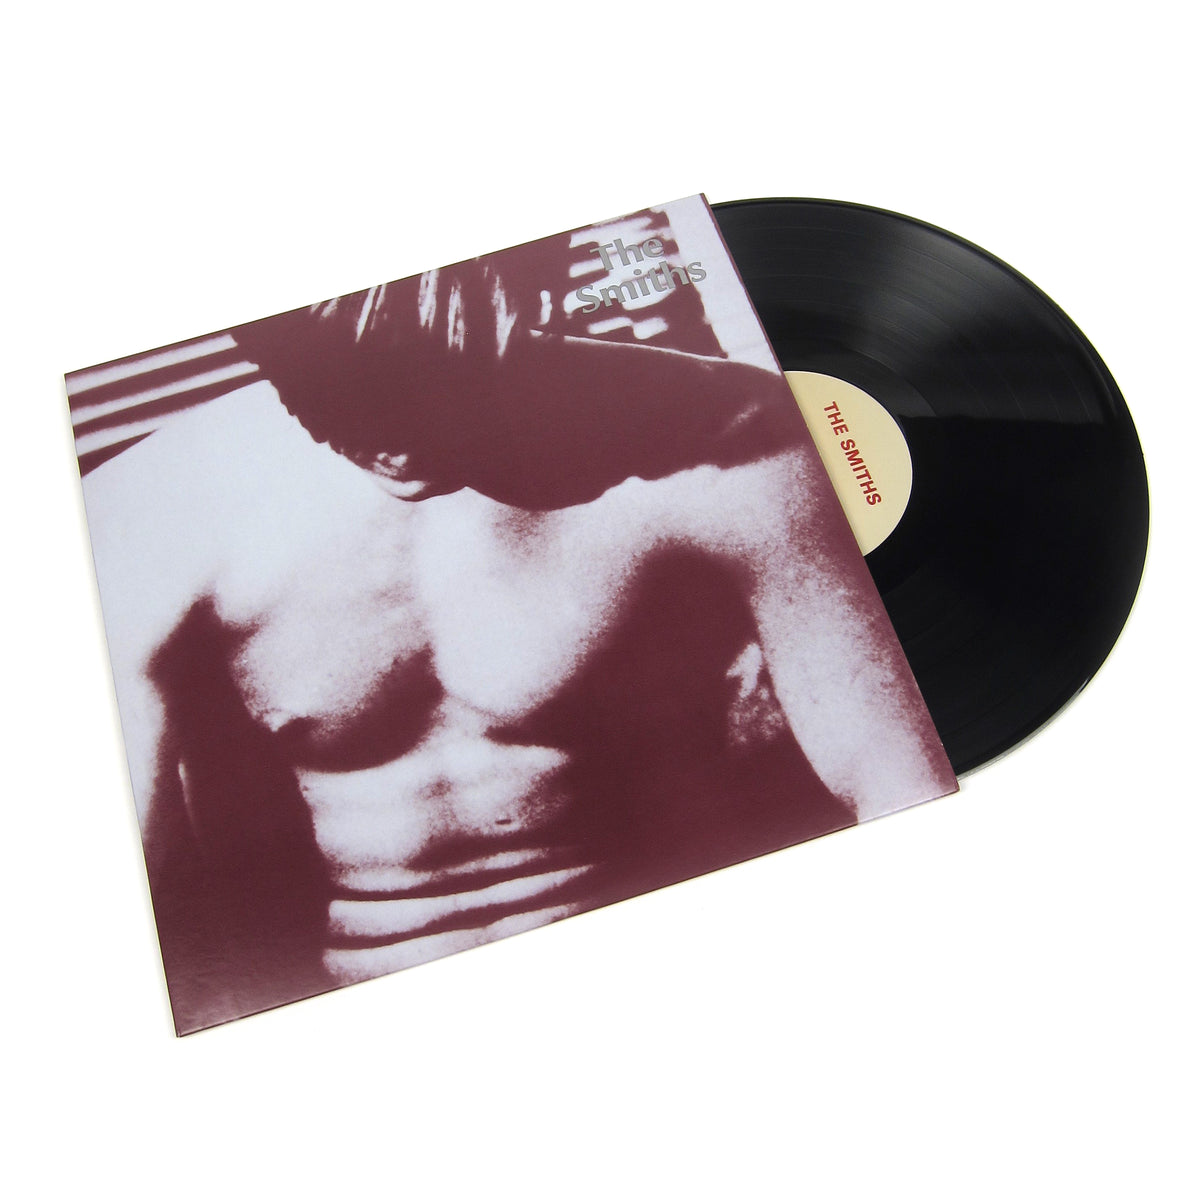 The Smiths: The Smiths (180g) Vinyl LP